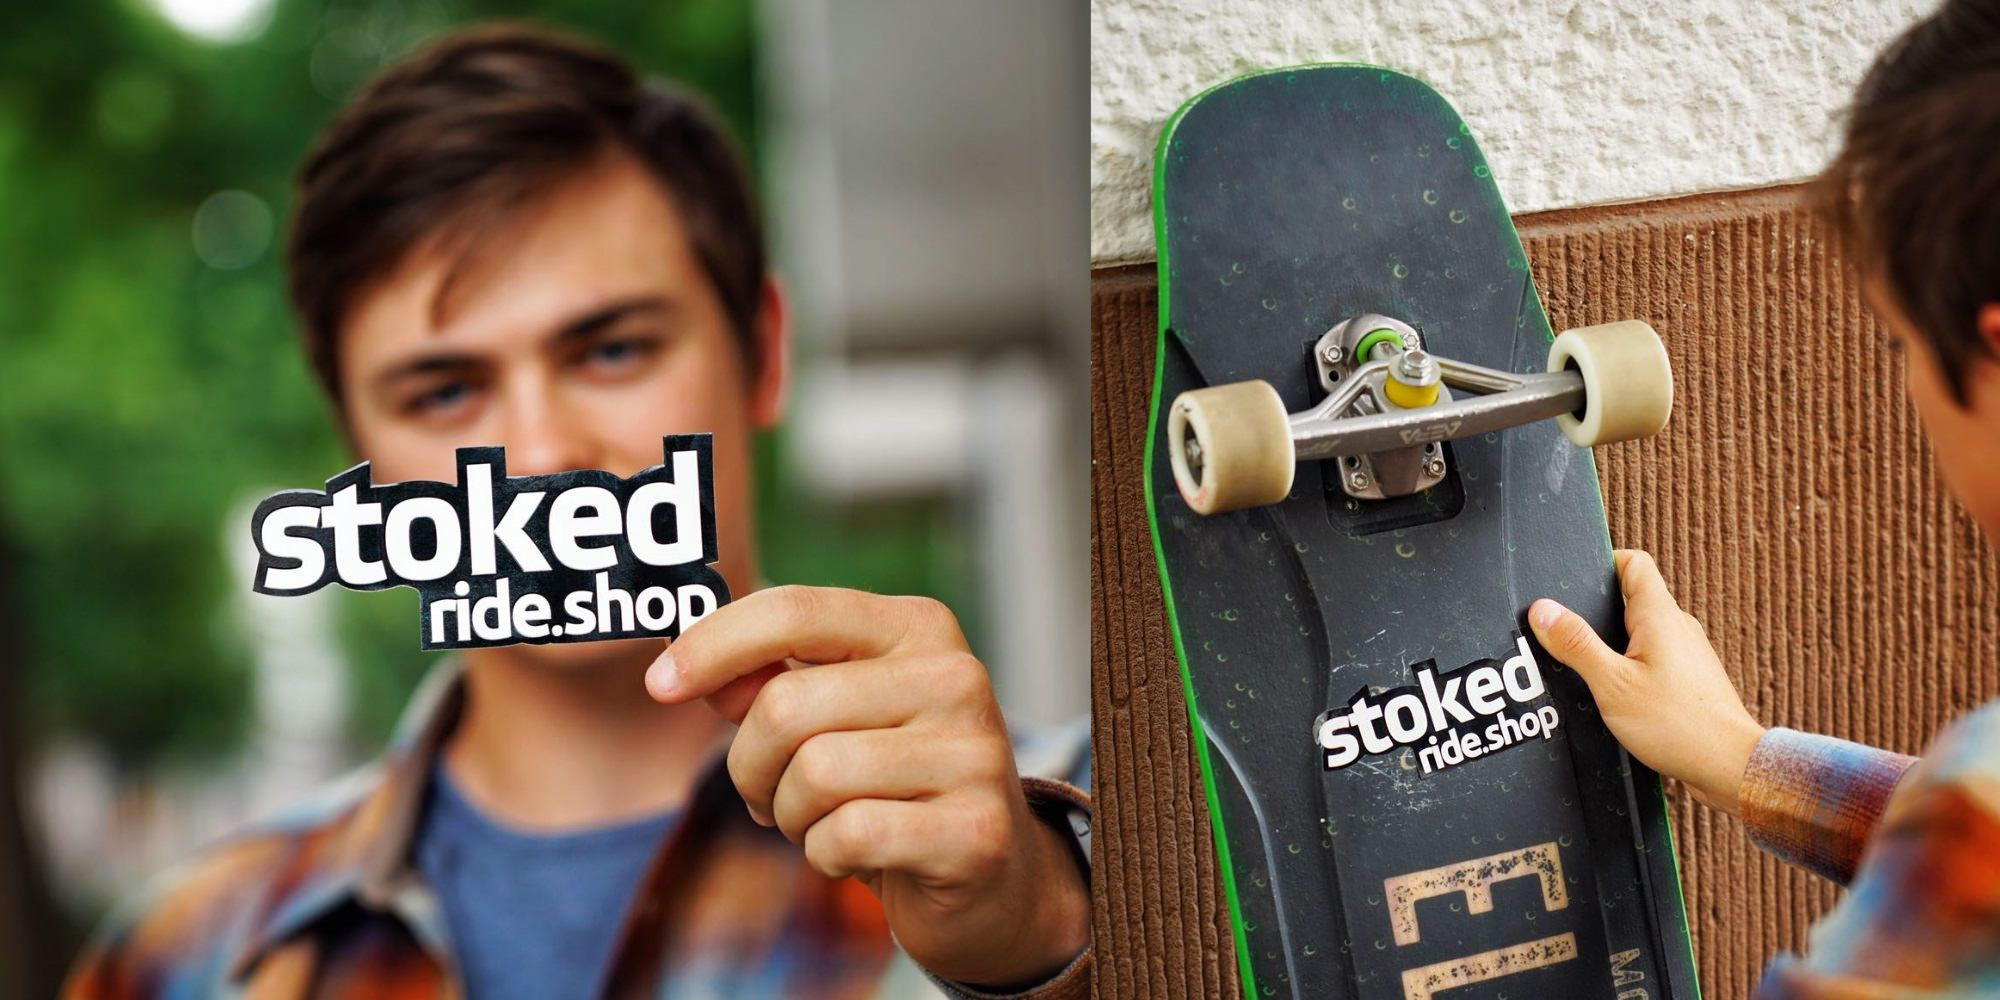 Brandon DesJarlais Joins Stoked Ride Shop